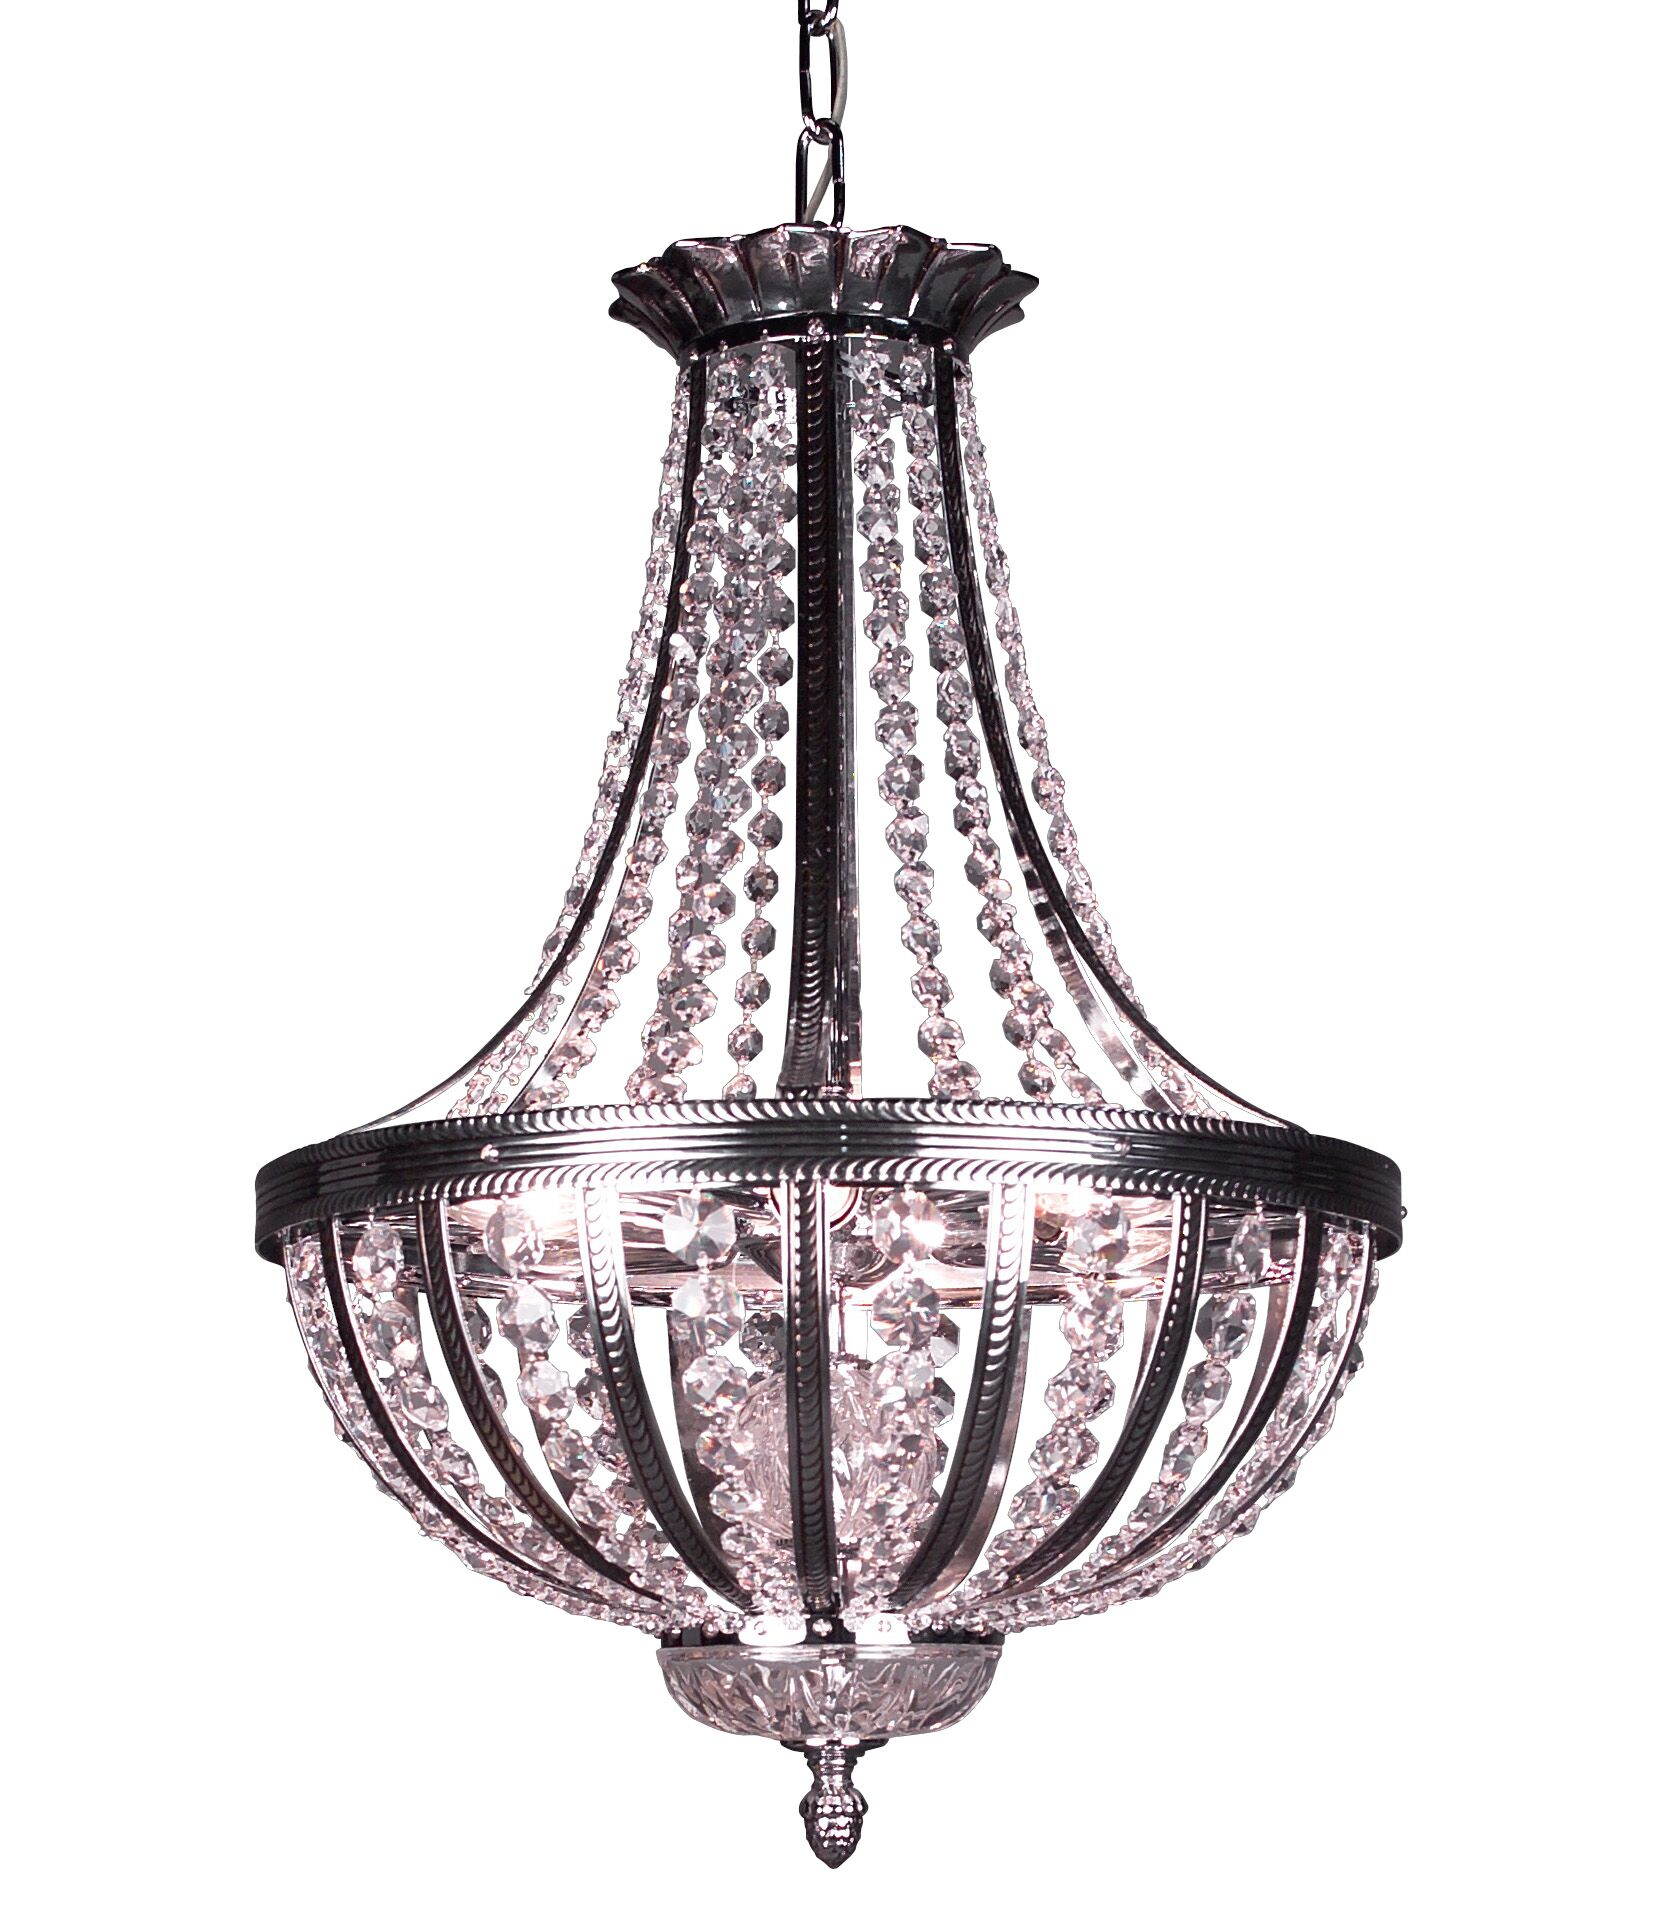 Terragona 6-Light Empire Chandelier Finish: Chrome with Black patina, Crystal Type: Crystalique Plus